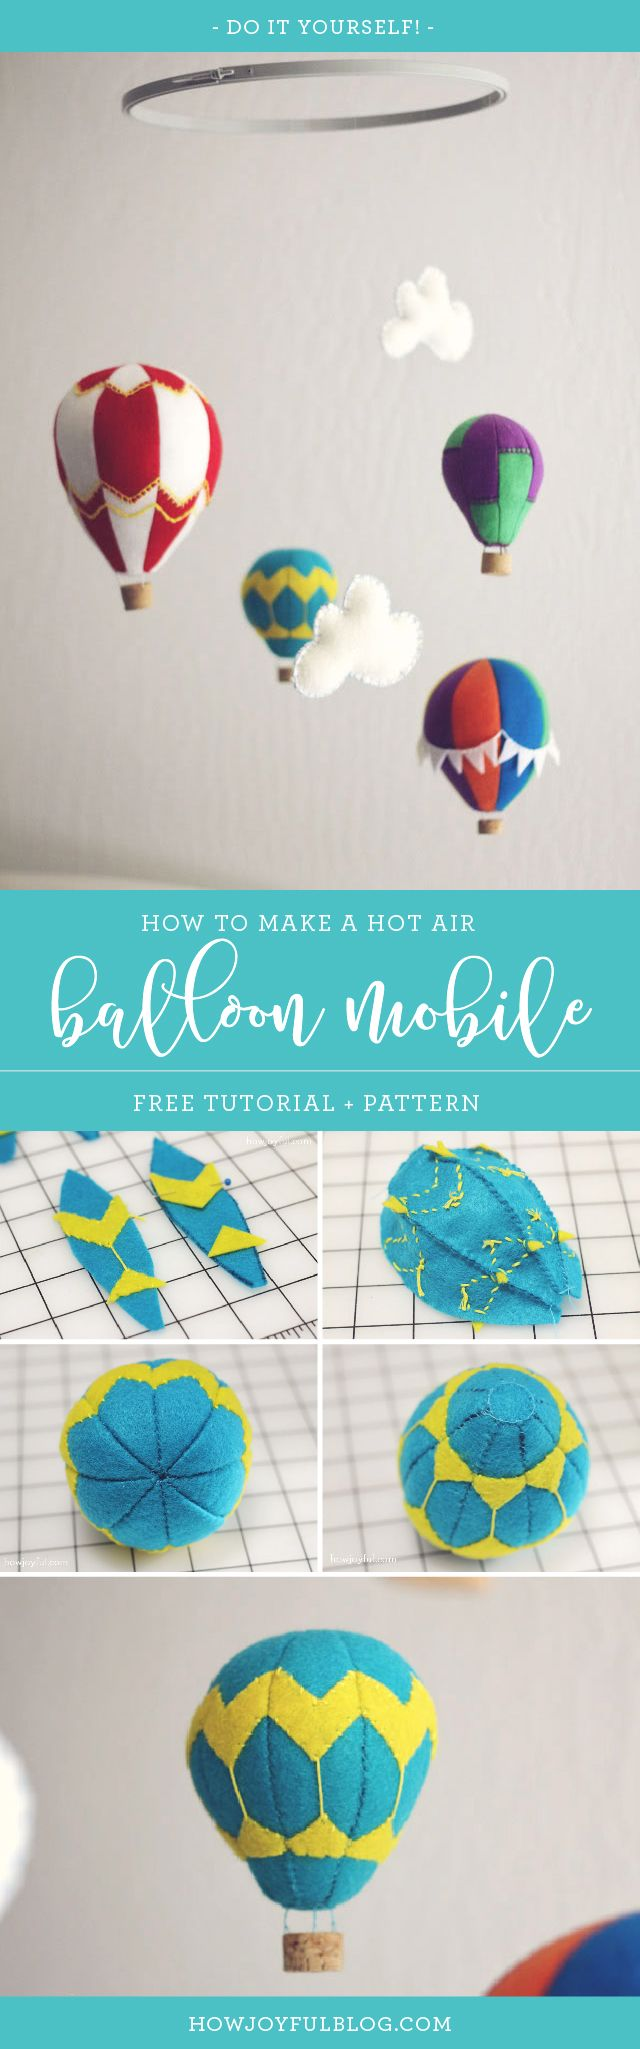 How to make a hot air balloon mobile with felt - tutorial and pattern - by @howjoyful